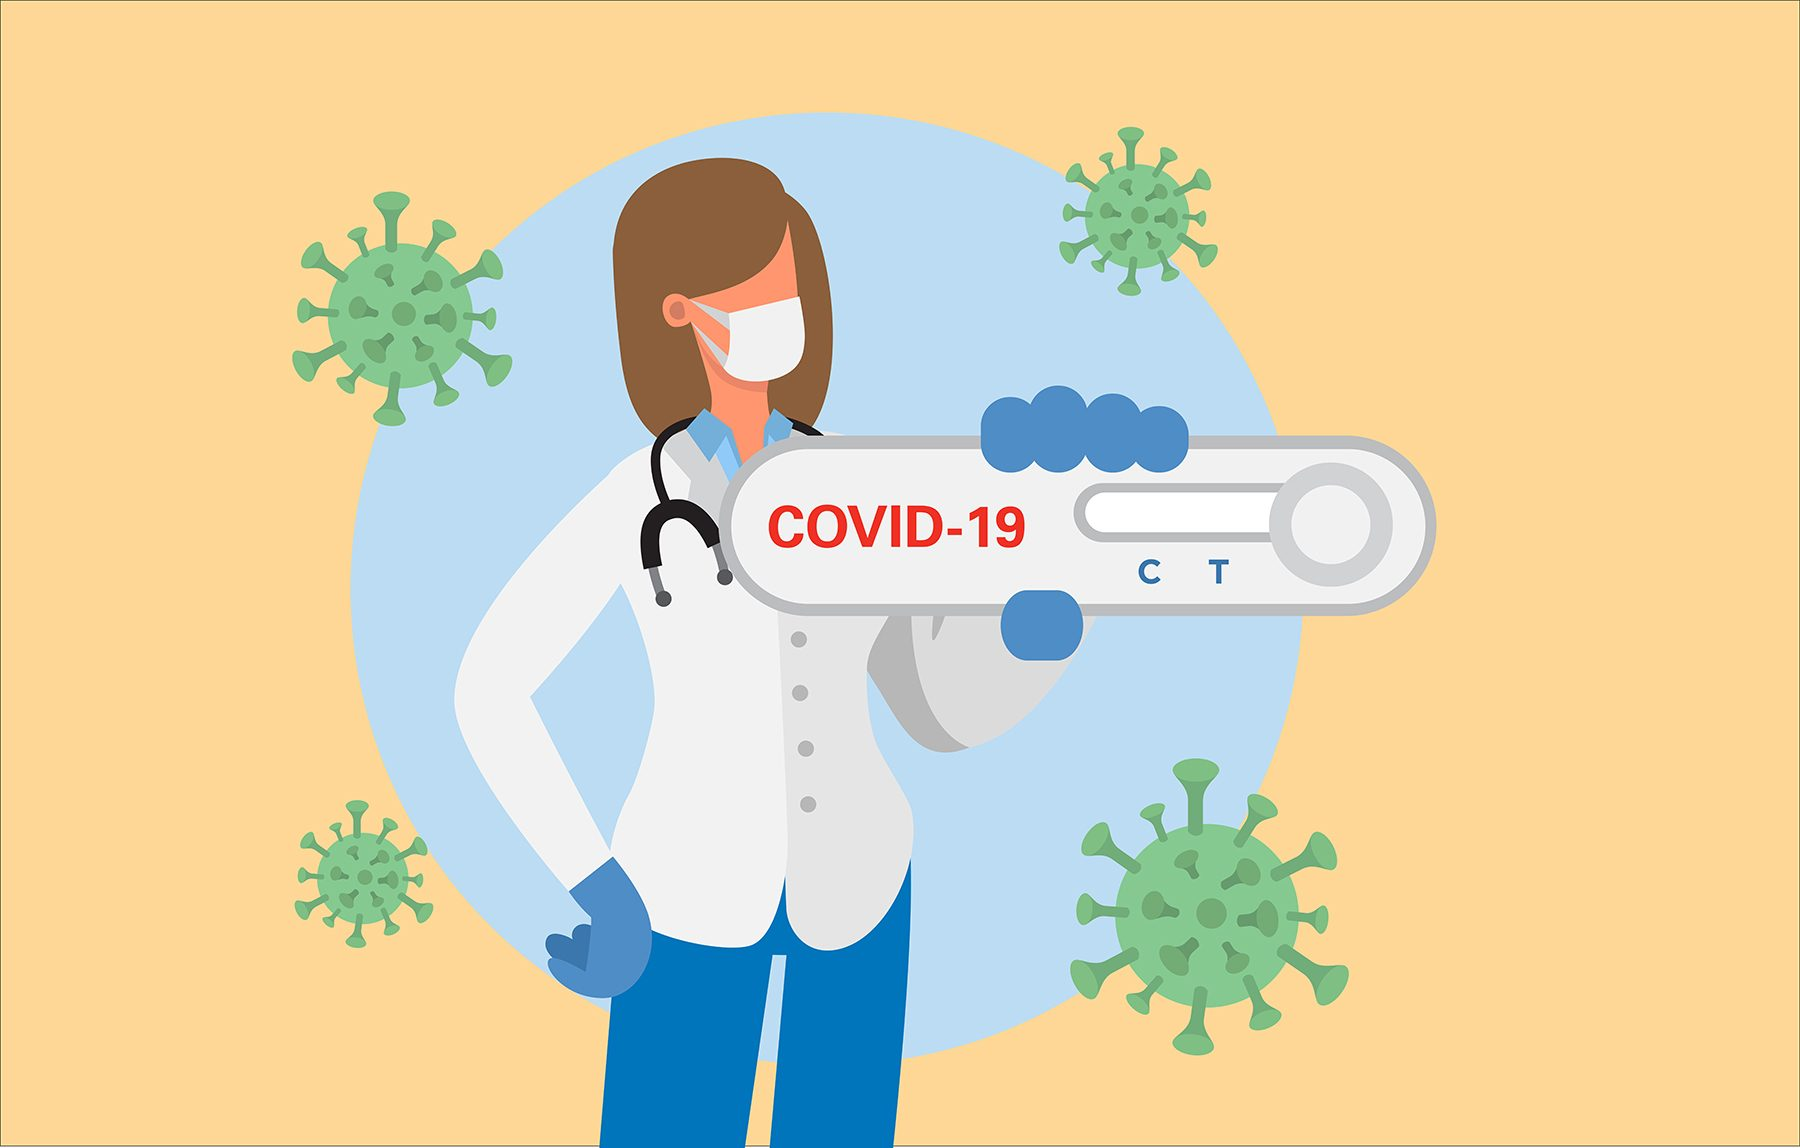 Illustration of doctor holding rapid COVID-19 antigen test